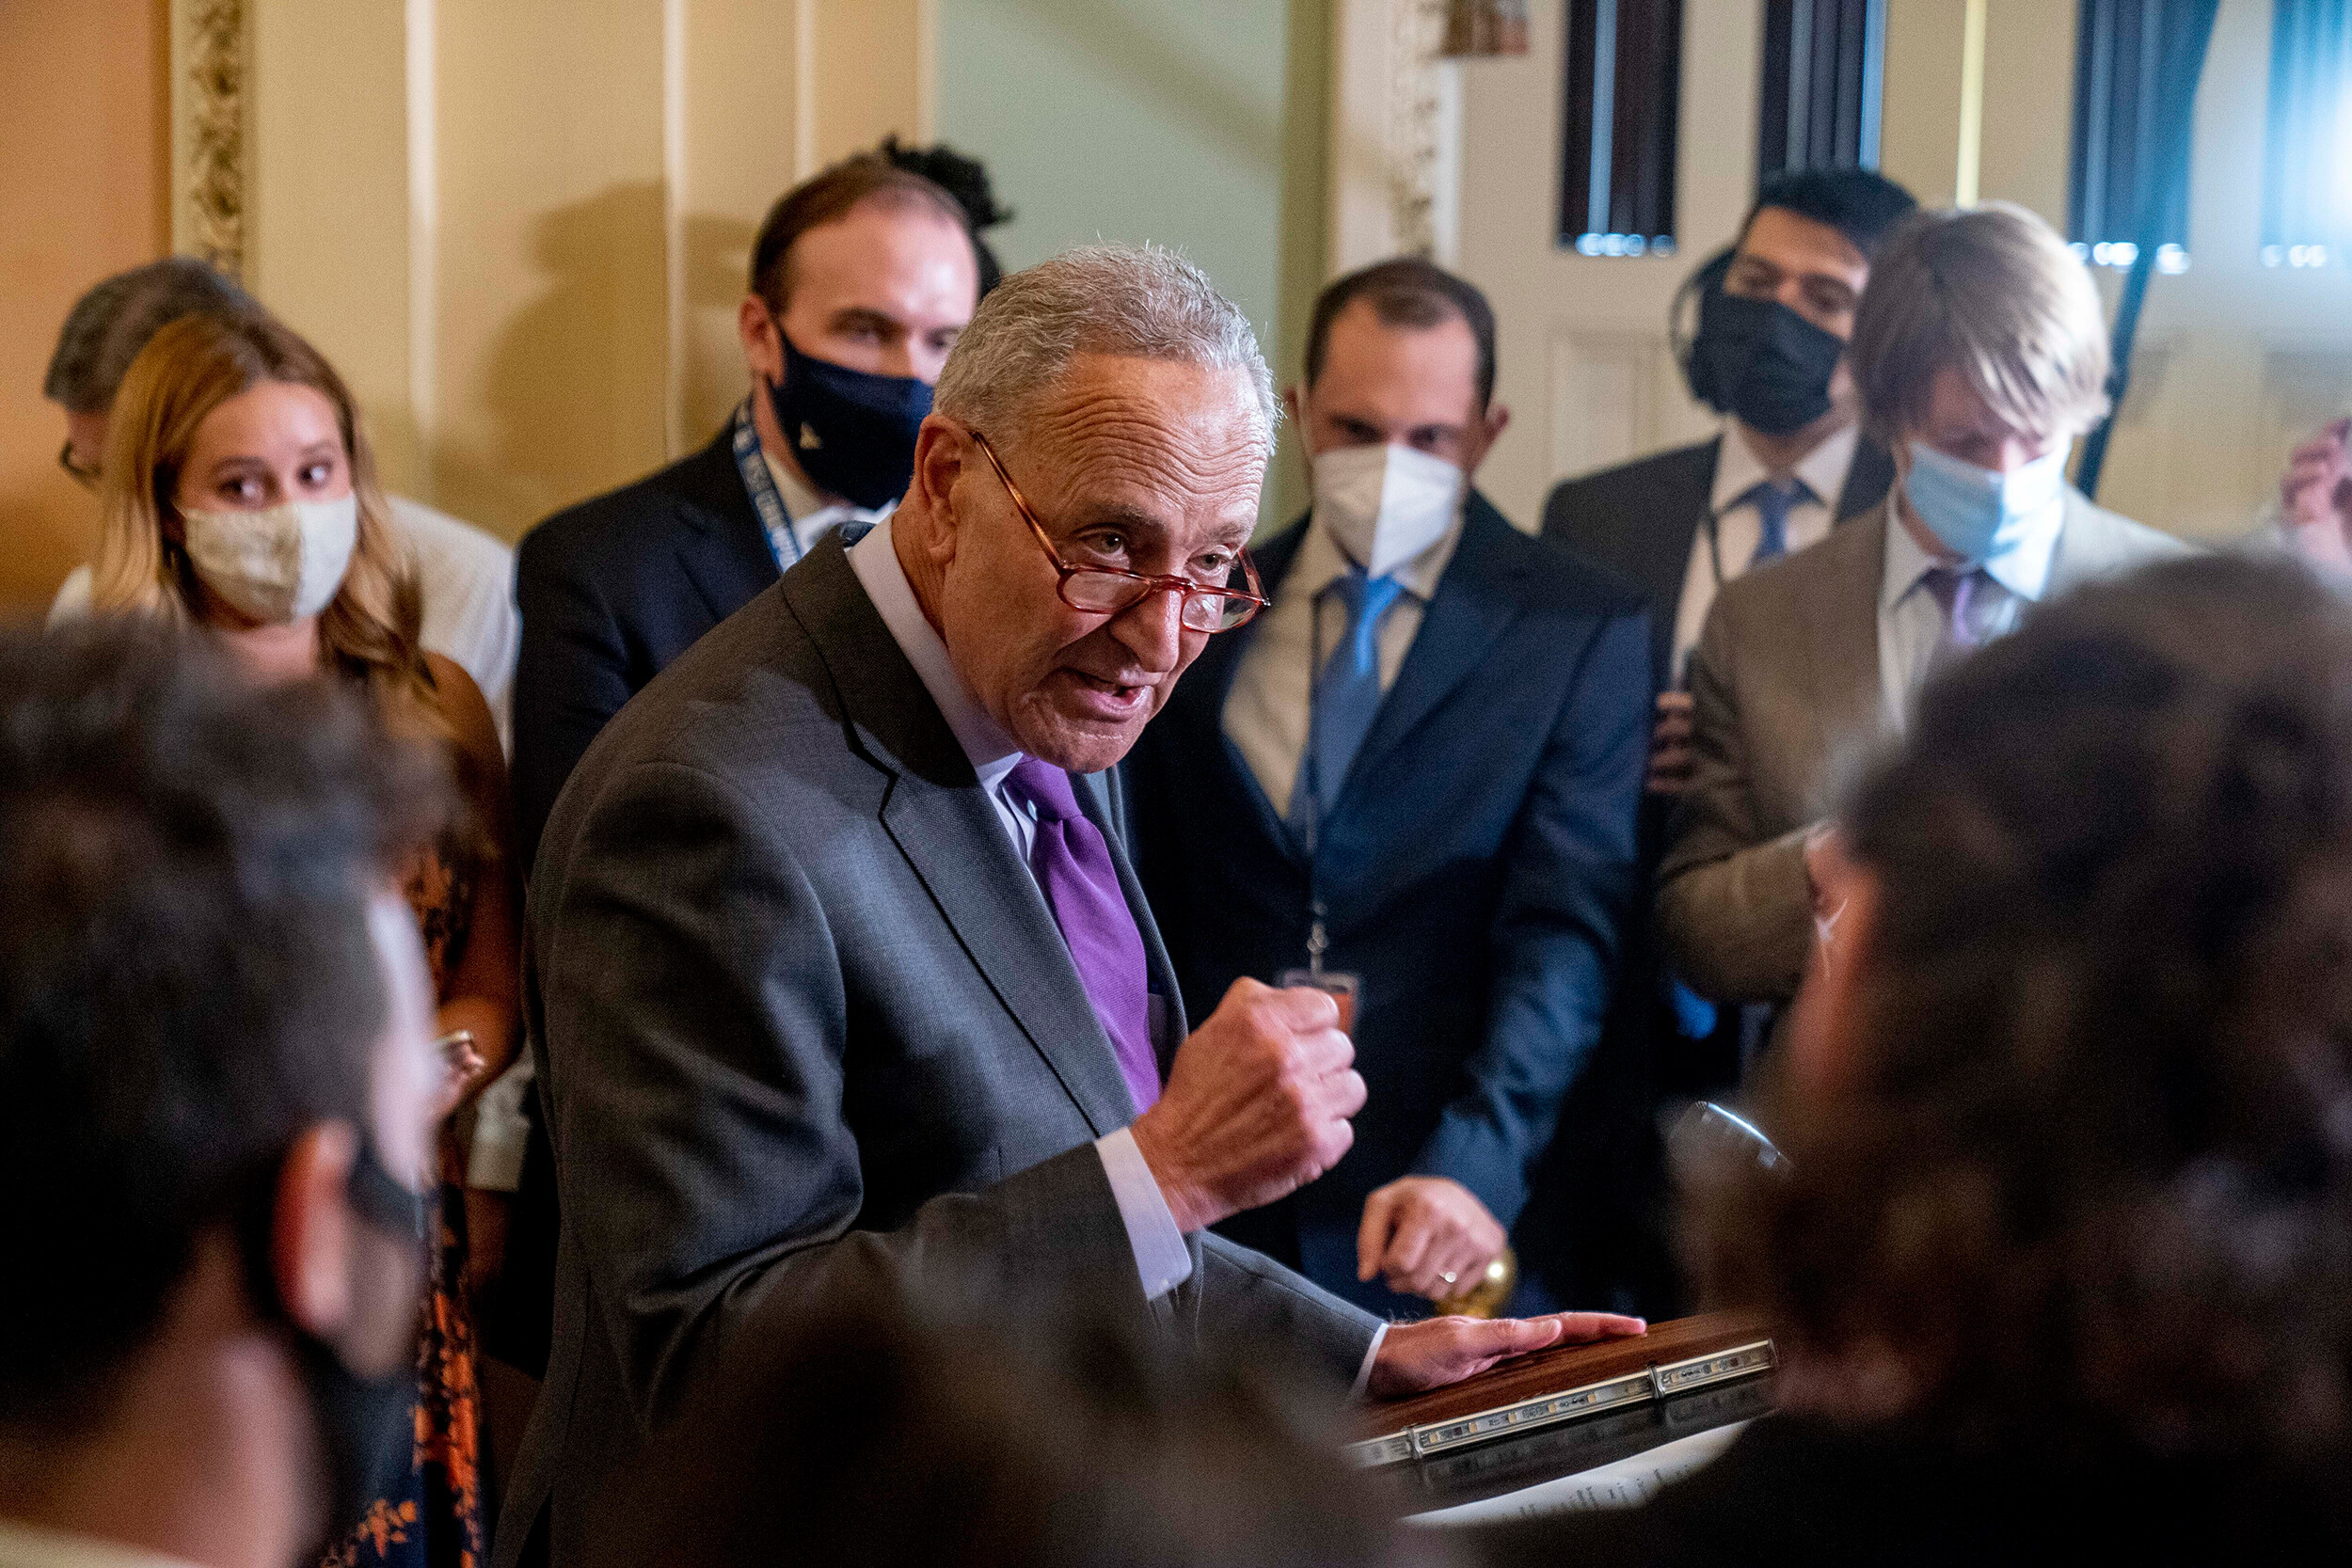 Democrats are serious about potentially changing Senate filibuster rules to avoid default